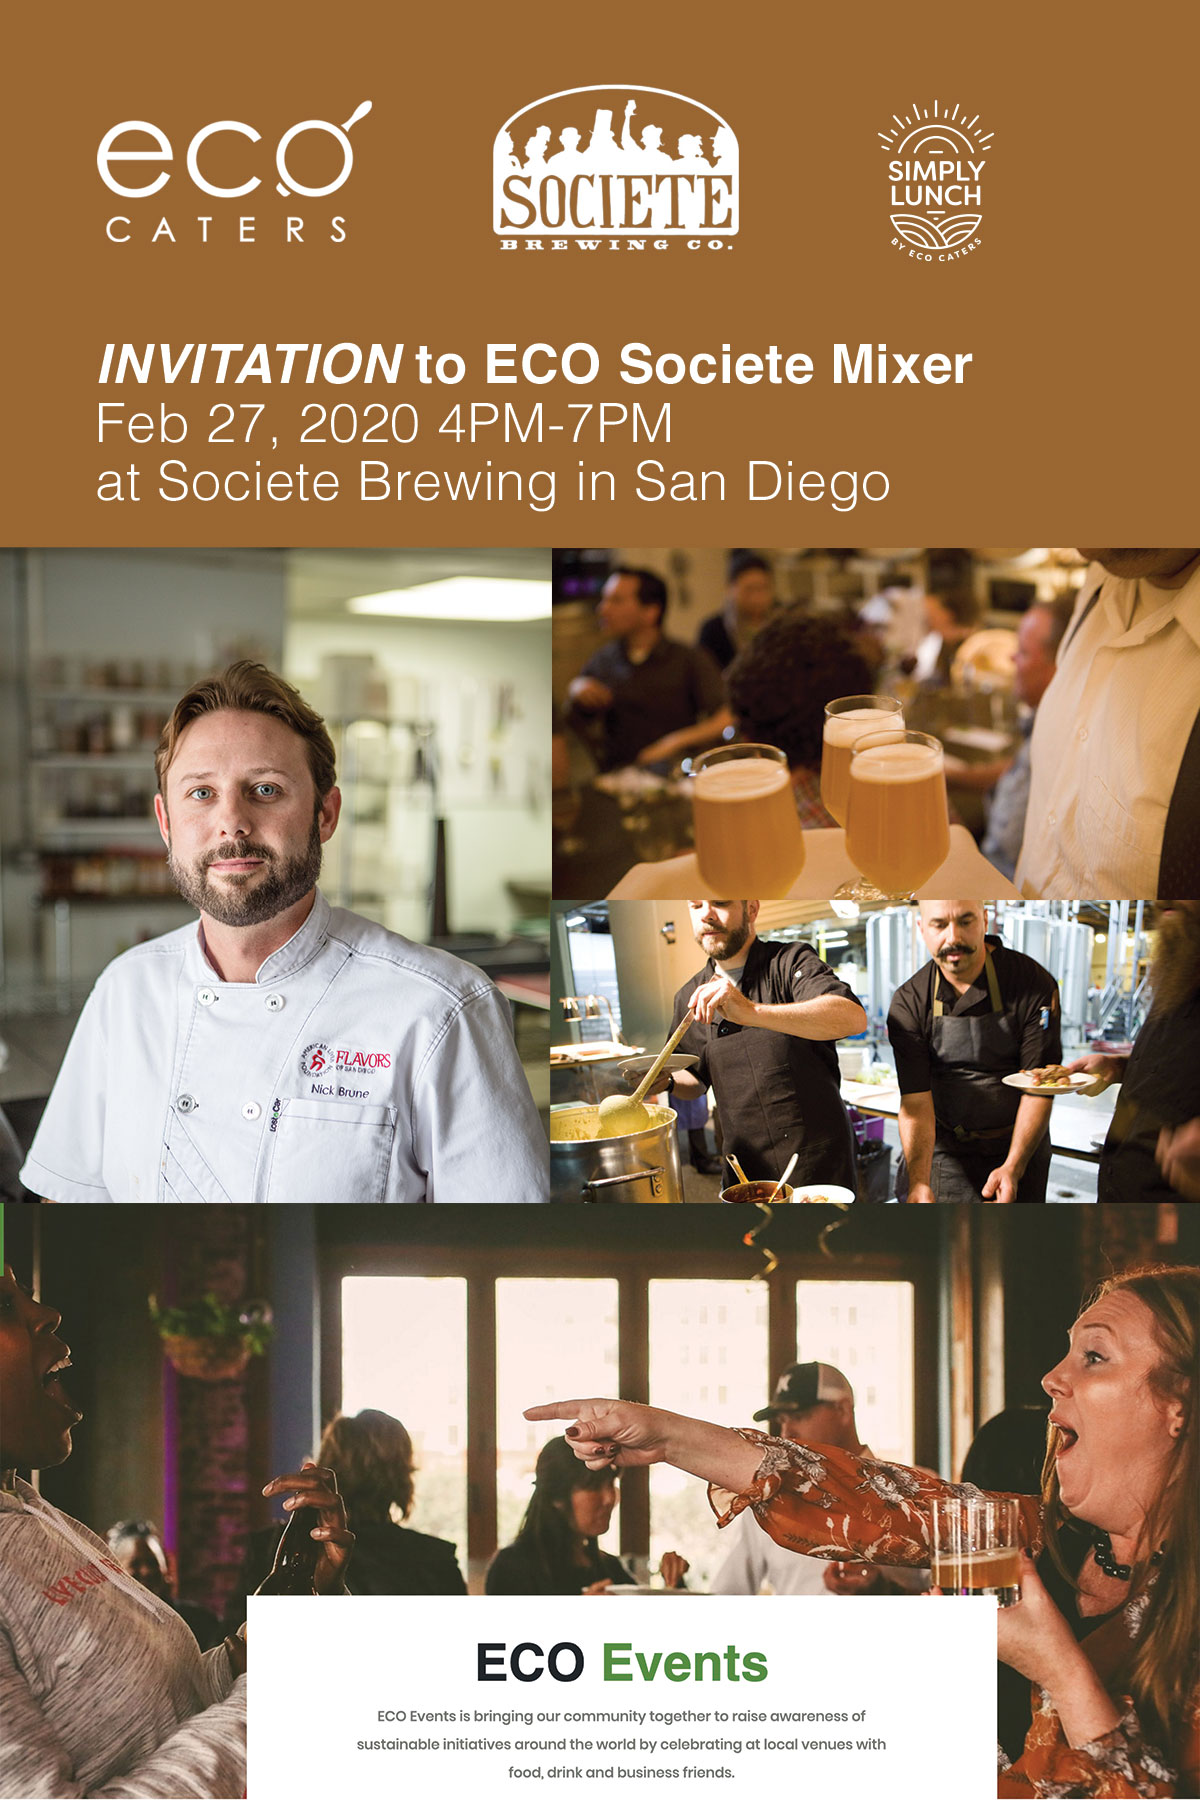 ECO-Caters-Societe-Event catering san diego wedding catering